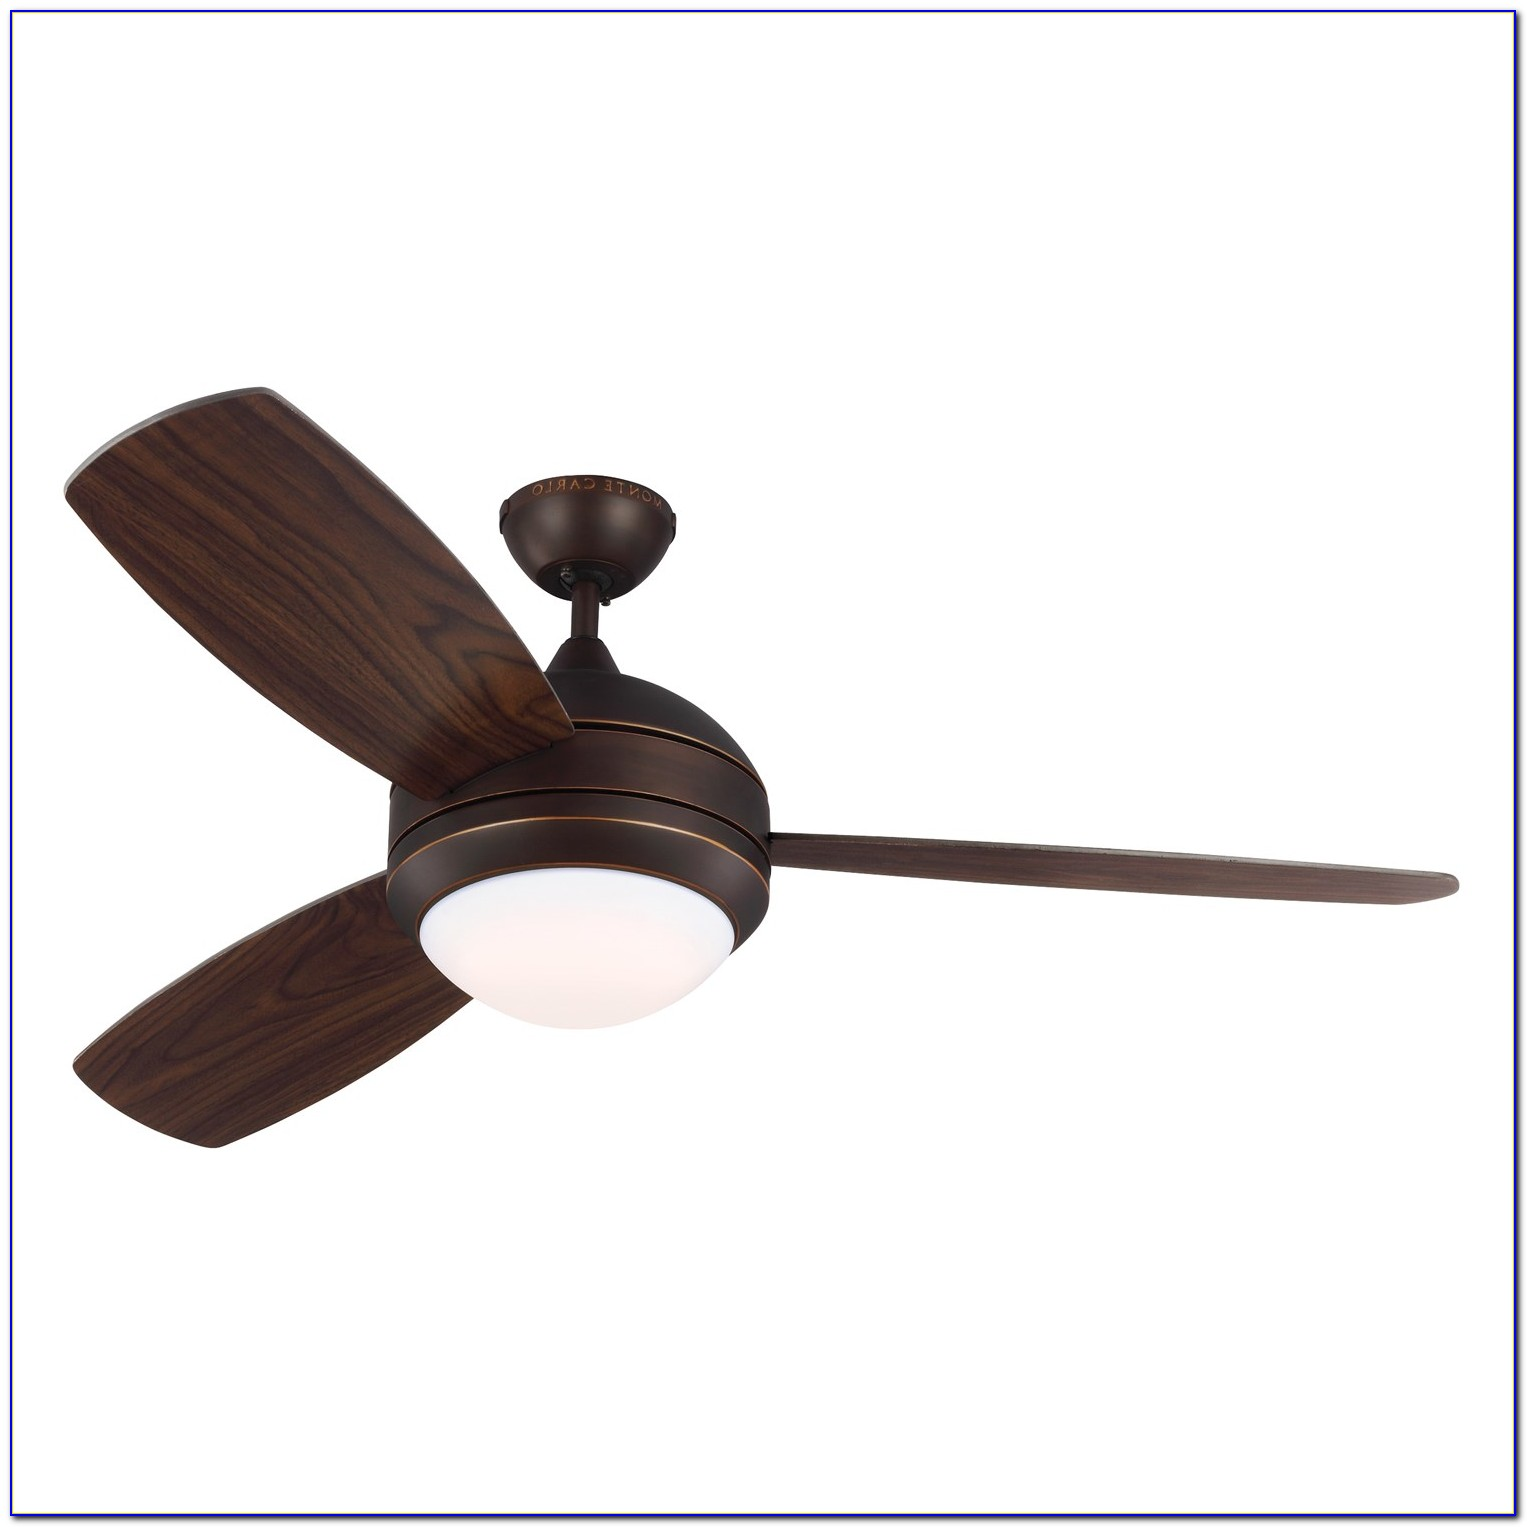 Monte Carlo Discus Ceiling Fan Manual